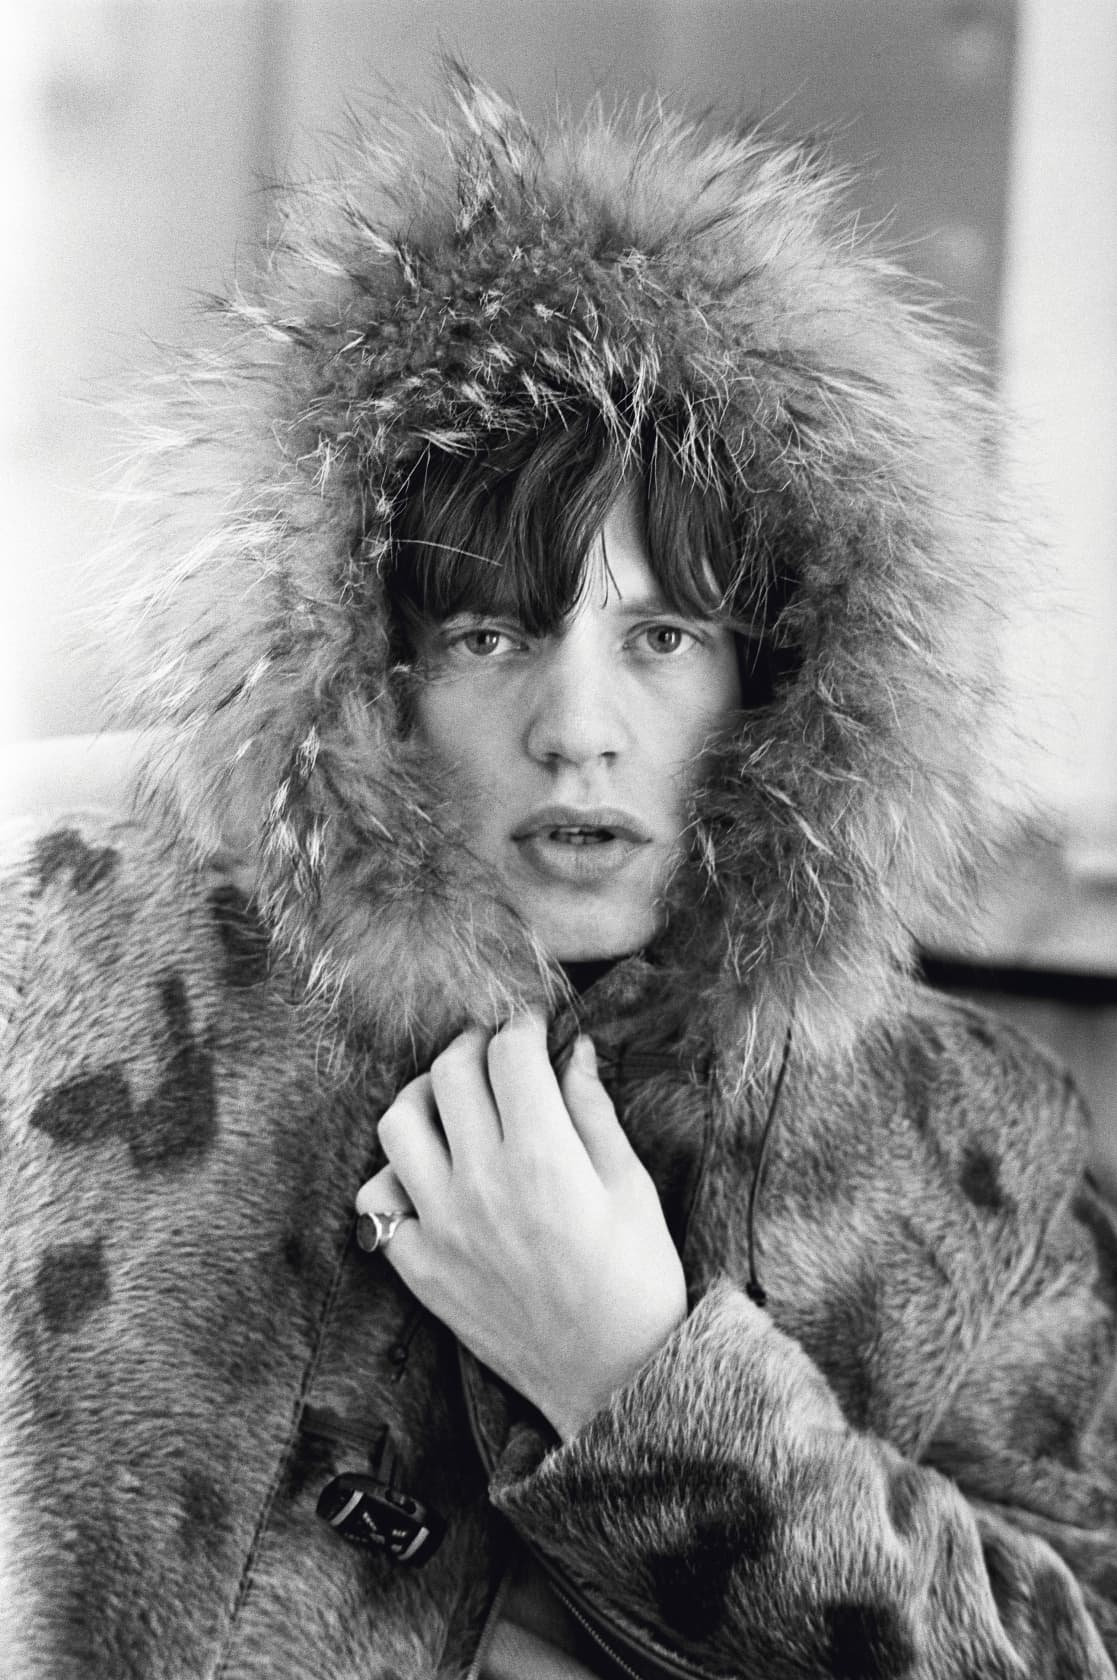 Terry O'Neill Mick Jagger Lifetime Gelatin Silver Print *available in other mediums & editions